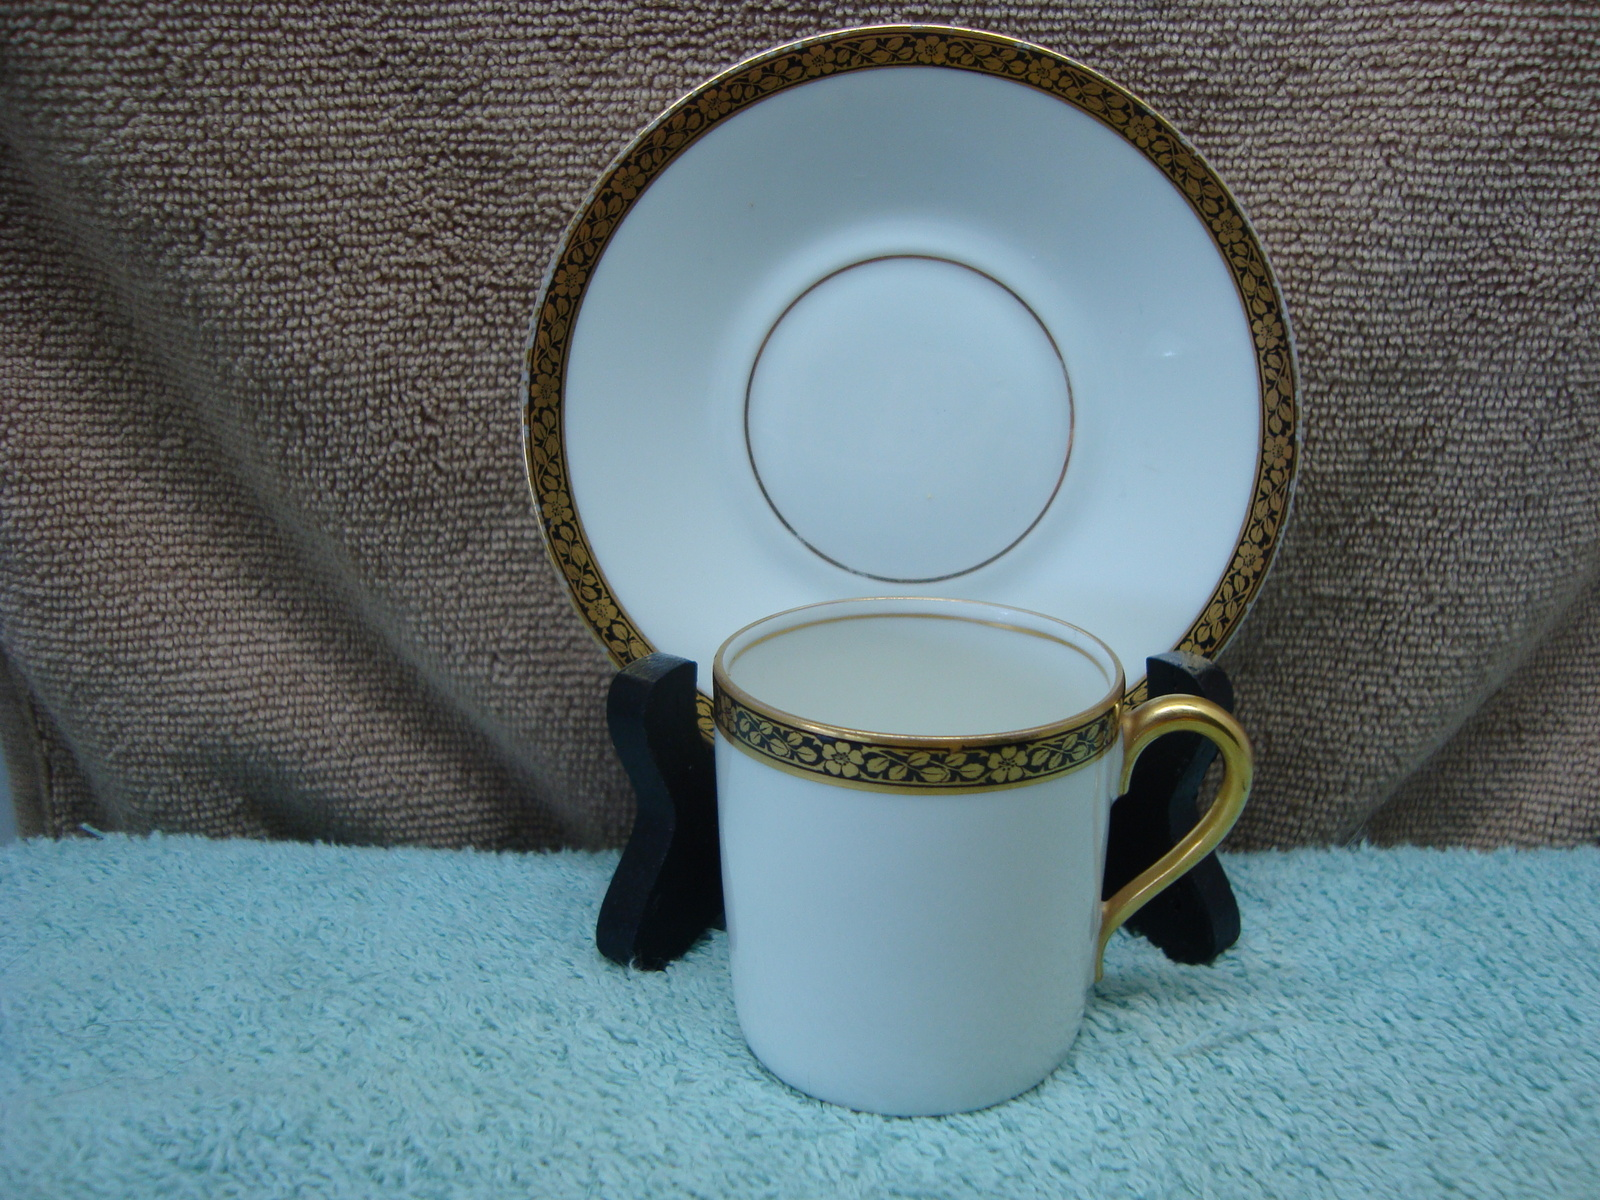 Primary image for Rosenthal China selb bavaria demitasse cup & saucer circa 1922